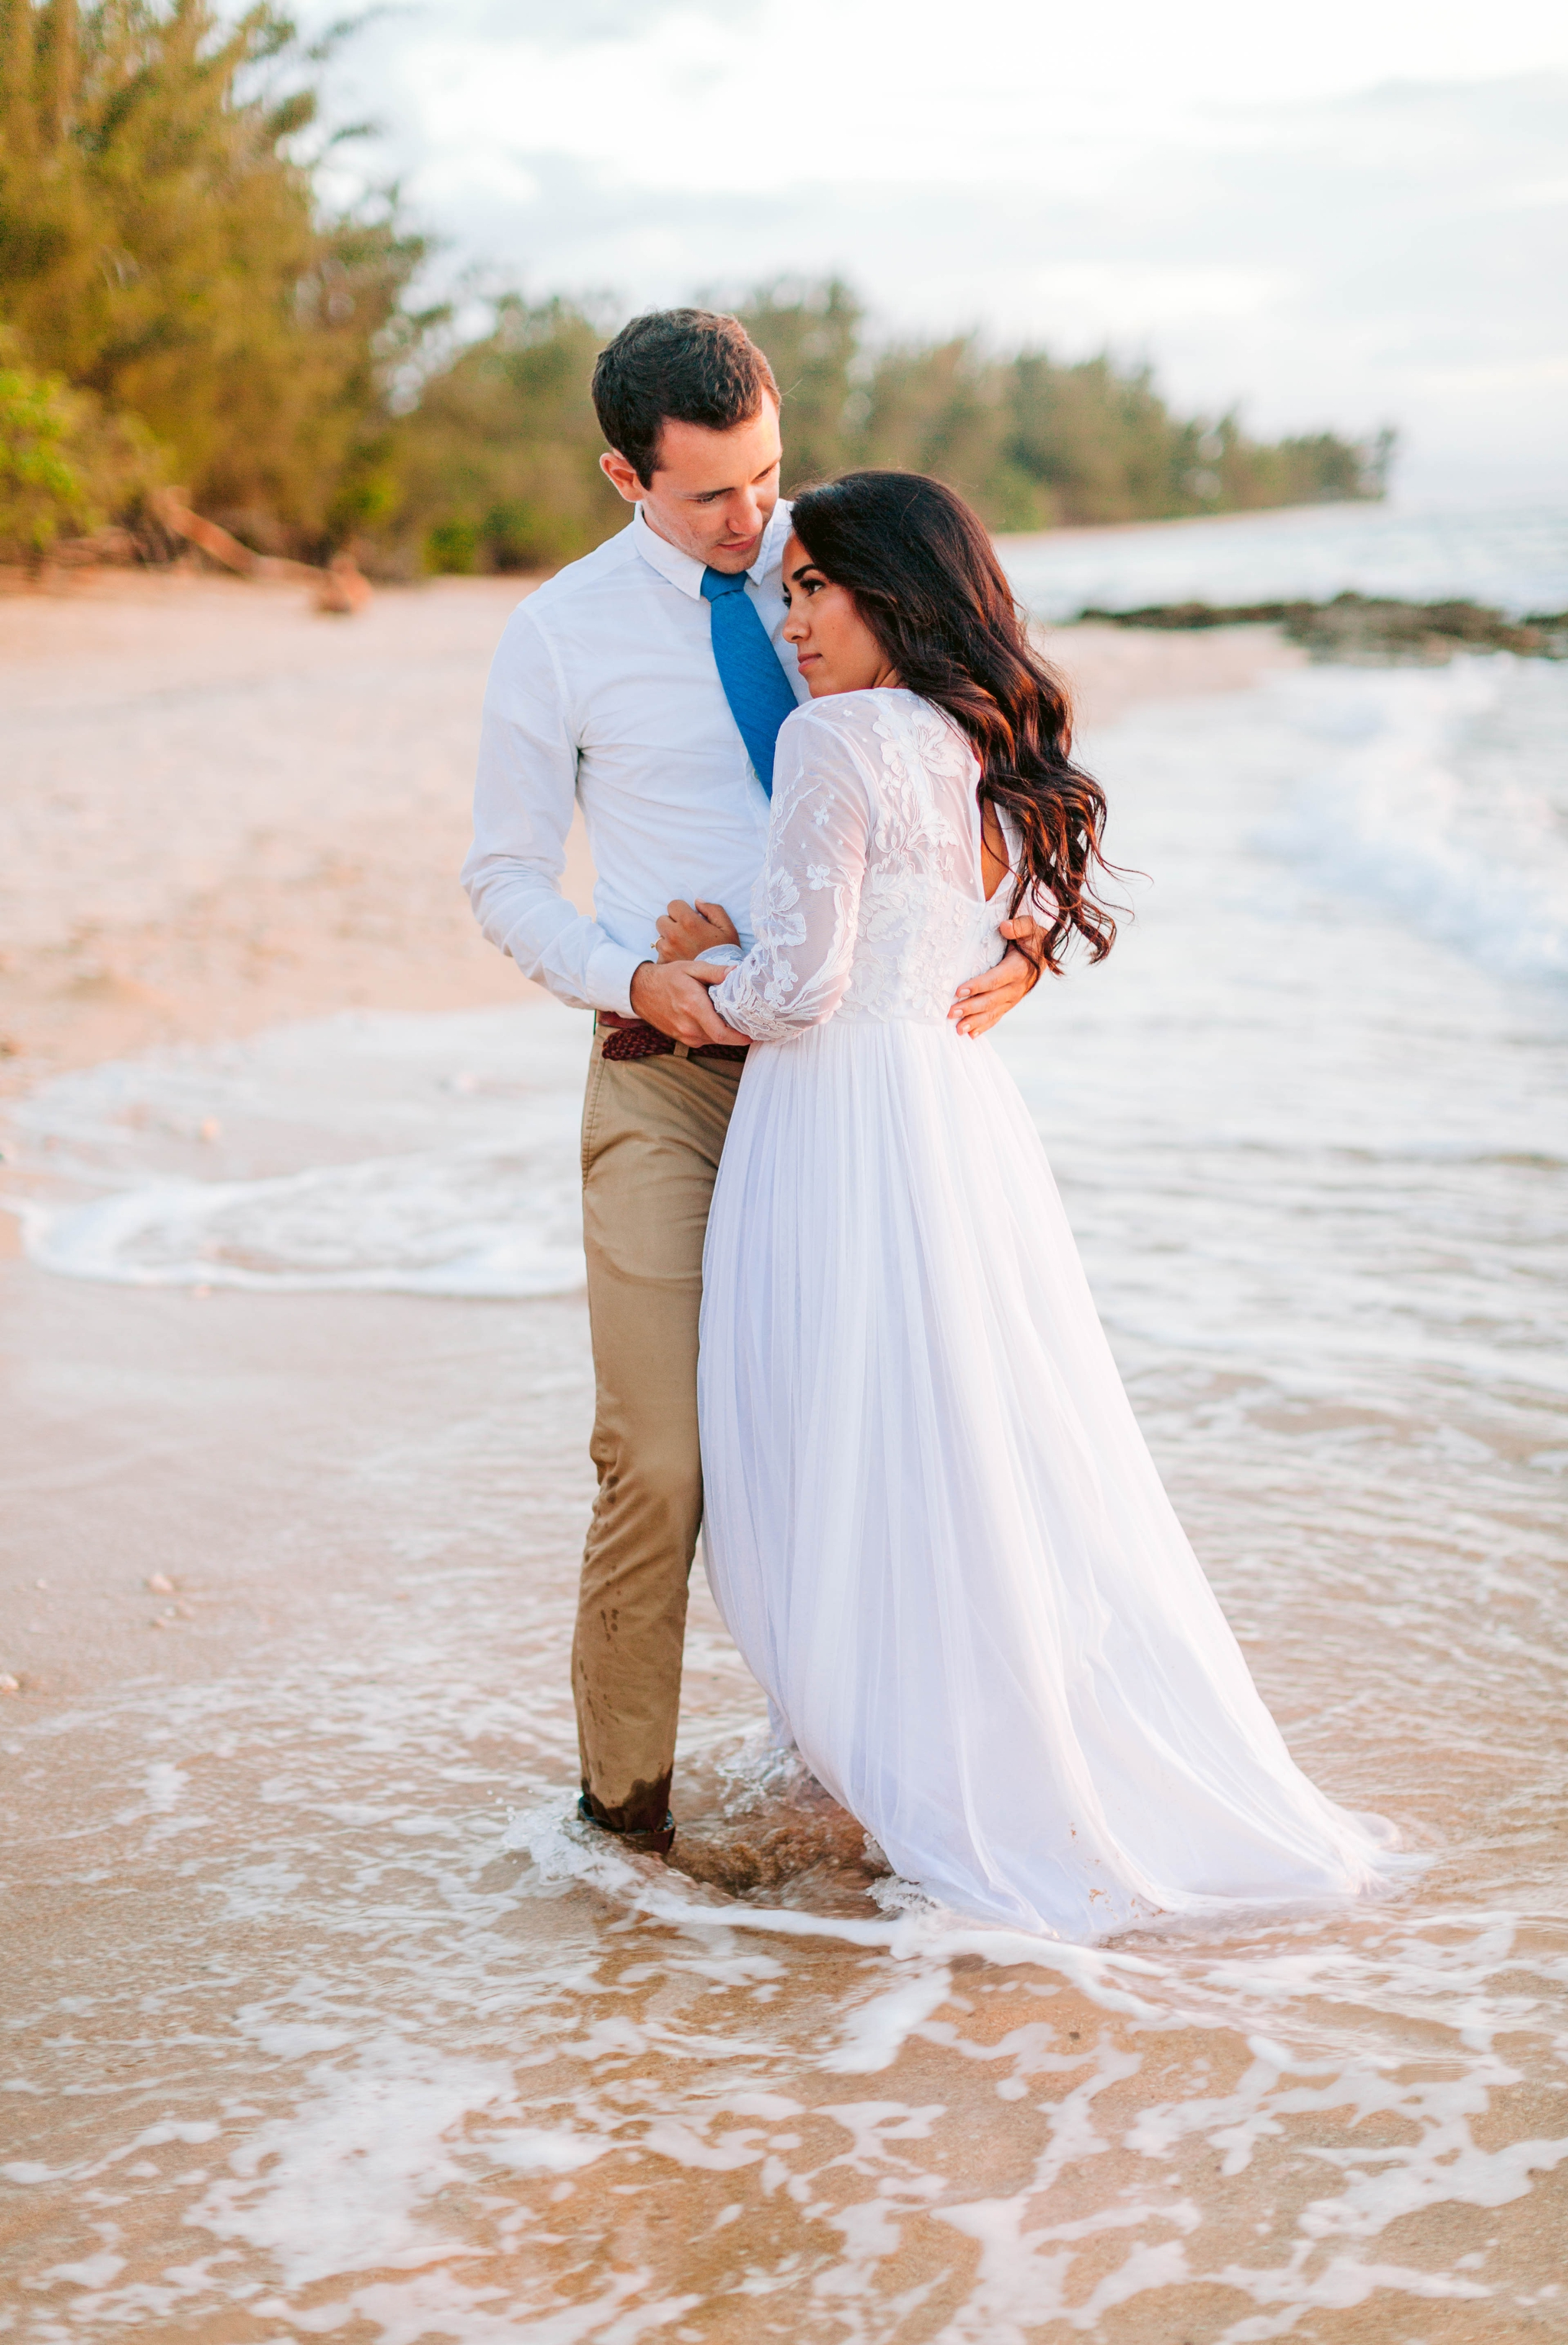 Bride and Groom - Wedding Portraits at Sunset in Hawaii - Ana + Elijah - Wedding at Loulu Palm in Haleiwa, HI - Oahu Hawaii Wedding Photographer - #hawaiiweddingphotographer #oahuweddings #hawaiiweddings